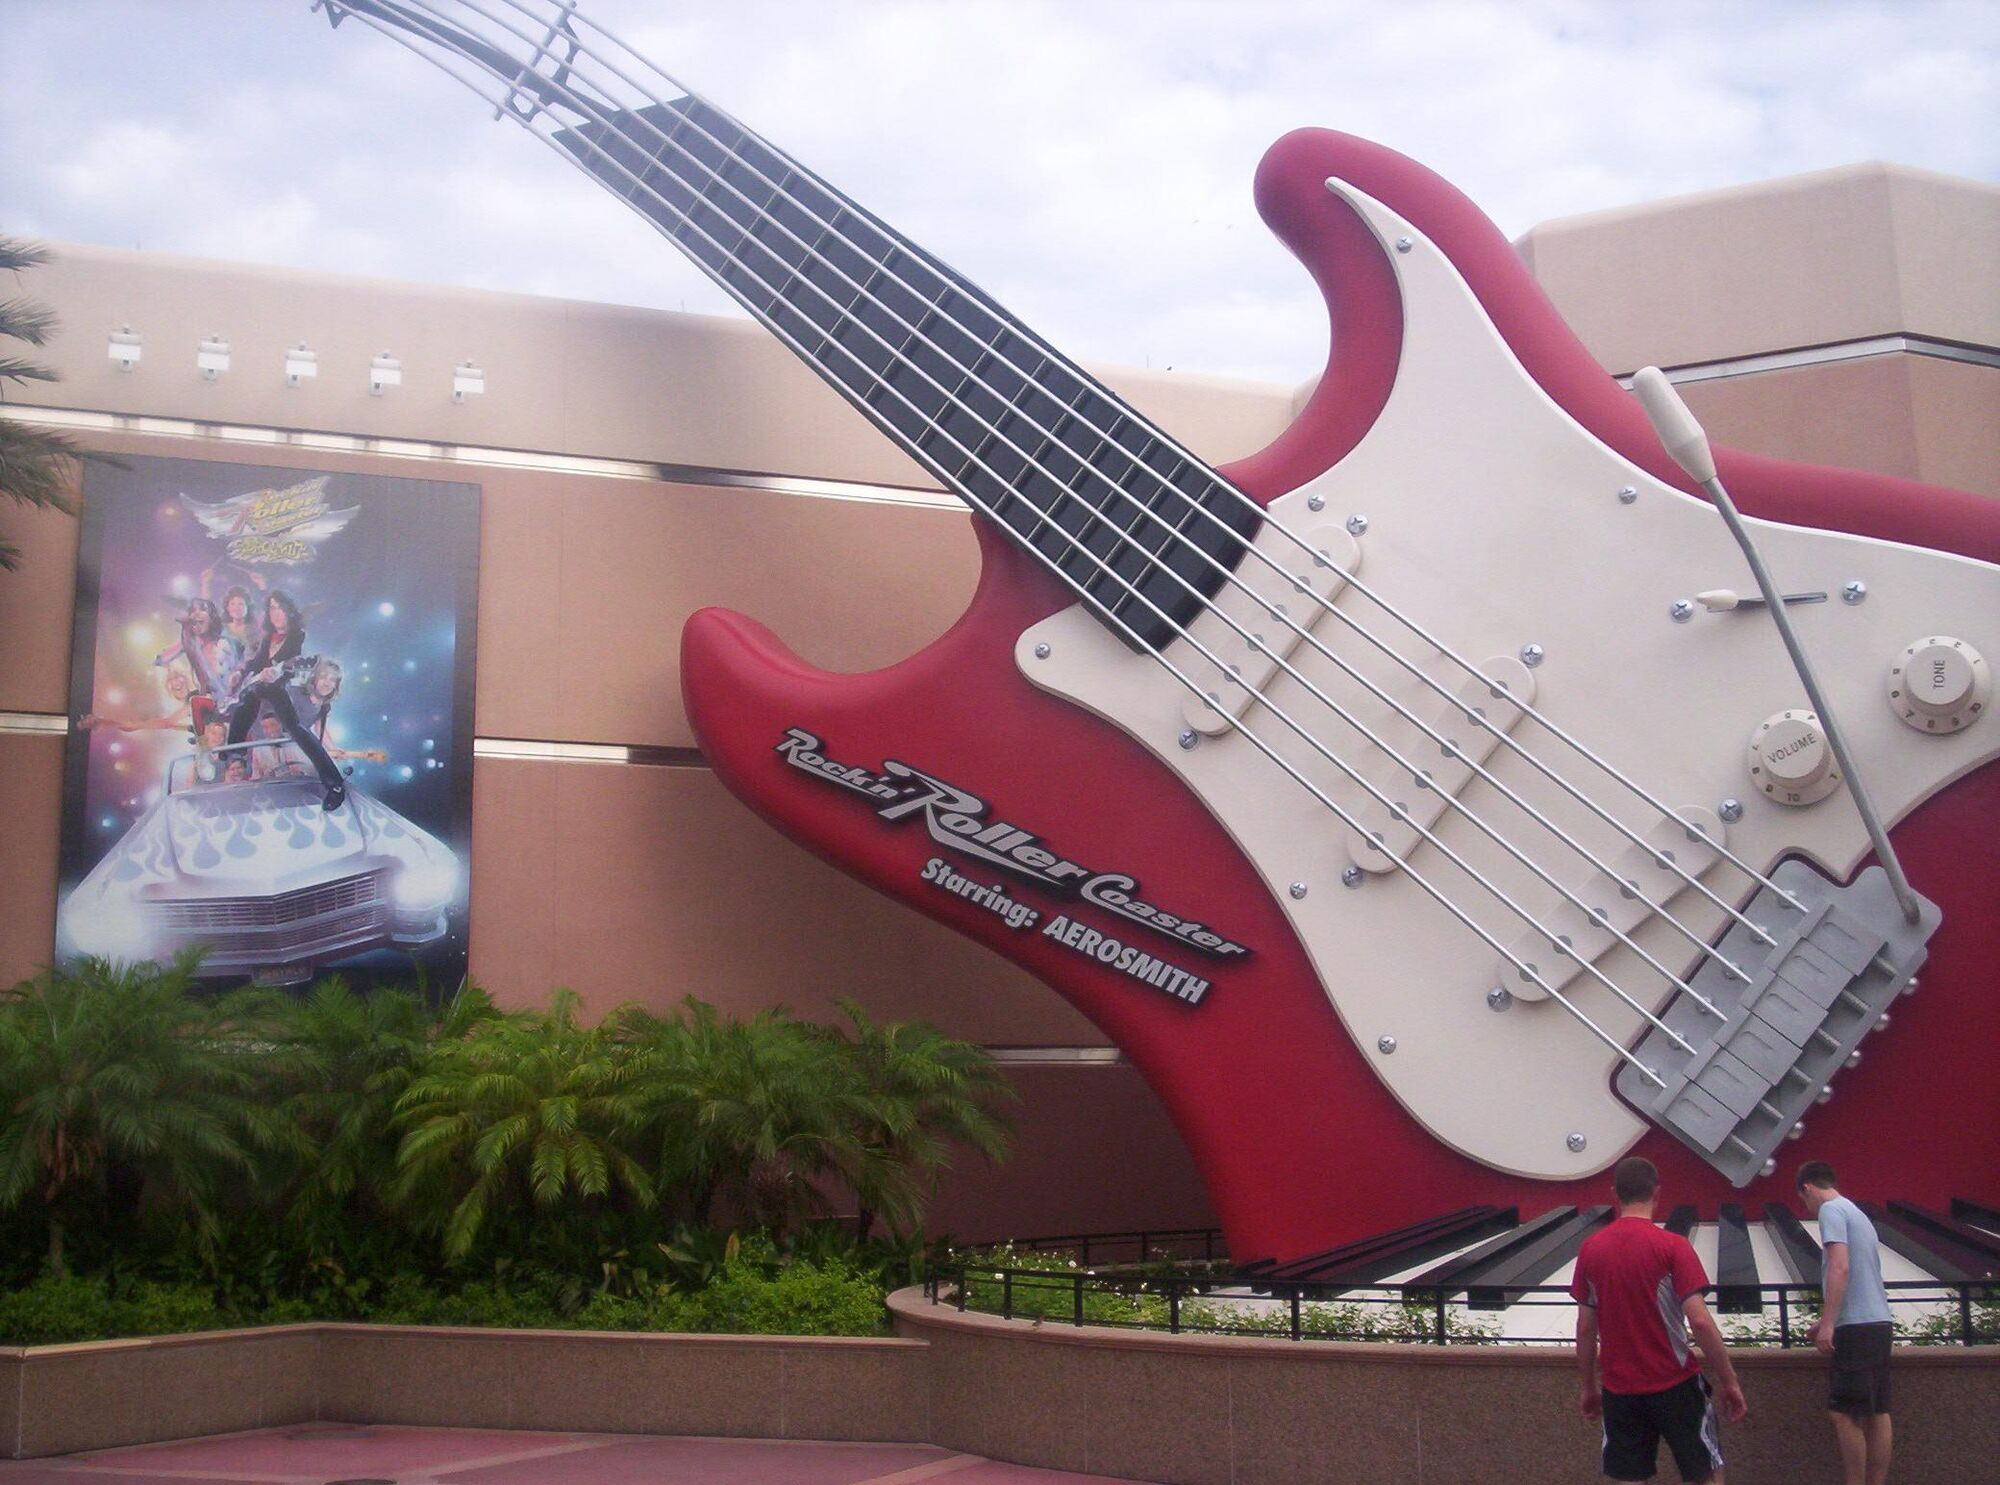 Rock 'n' Roller Coaster Starring Aerosmith | Disney Wiki